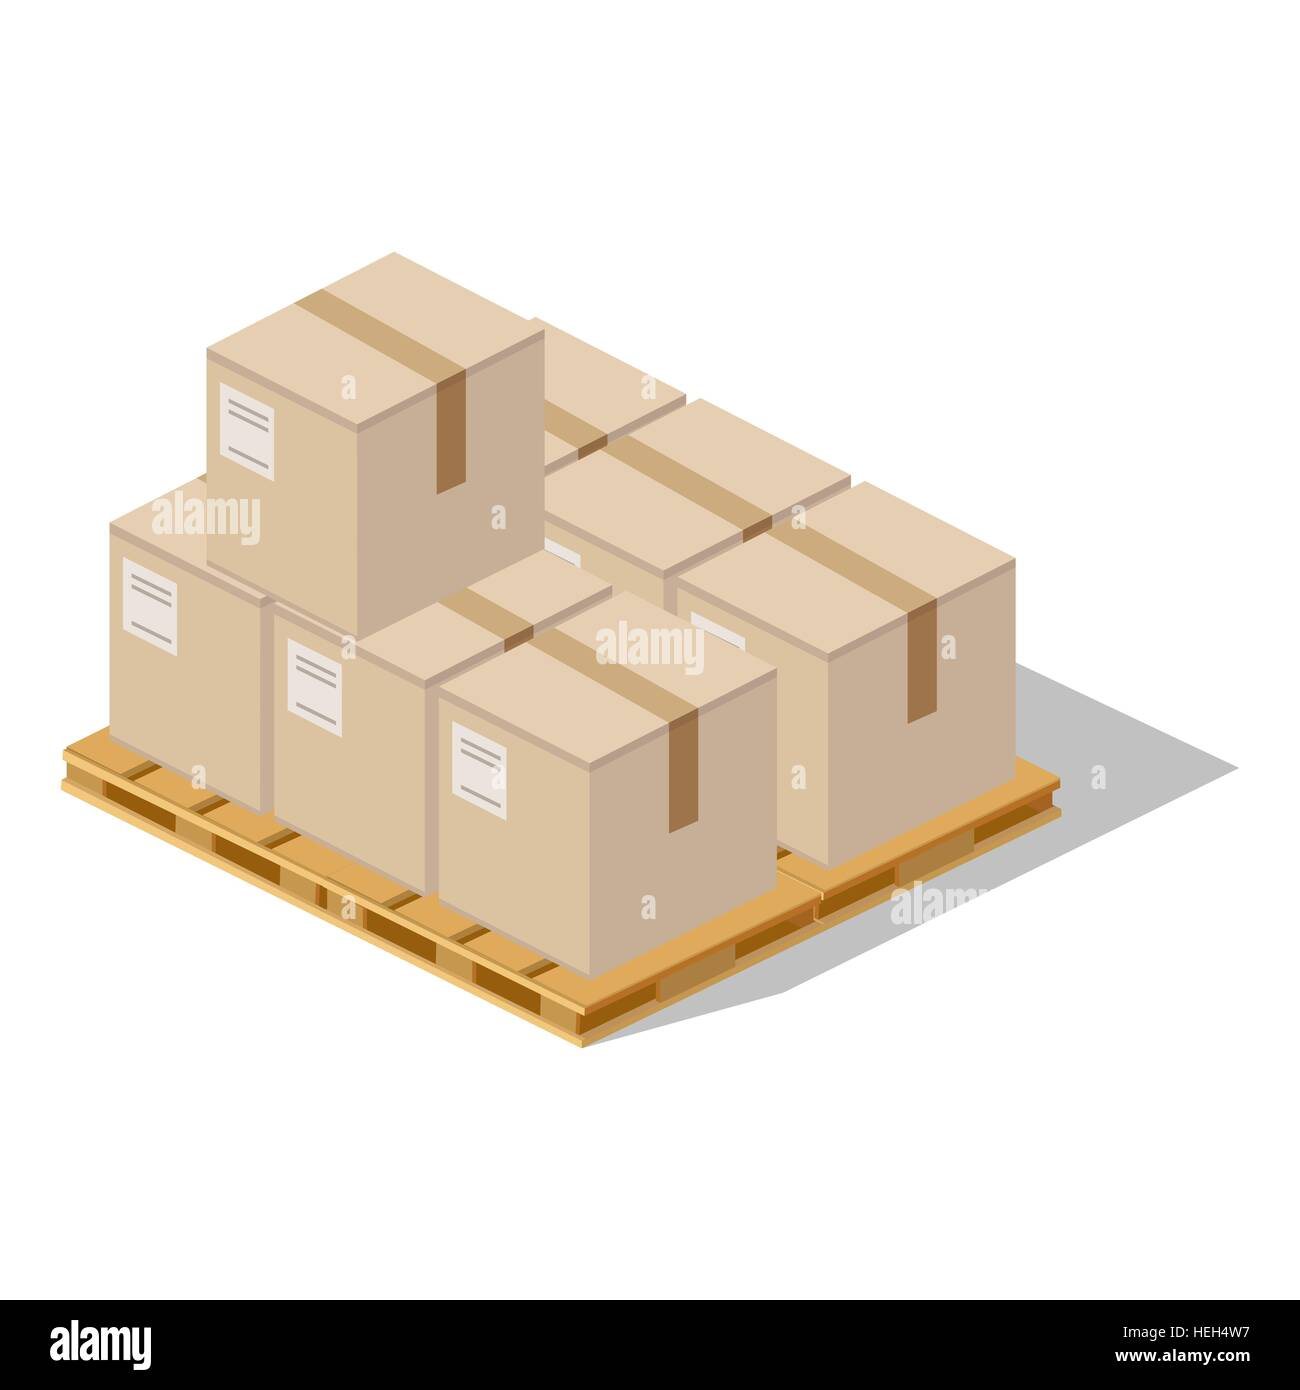 Packing Product Boxes Icon Design Style Box Delivery On